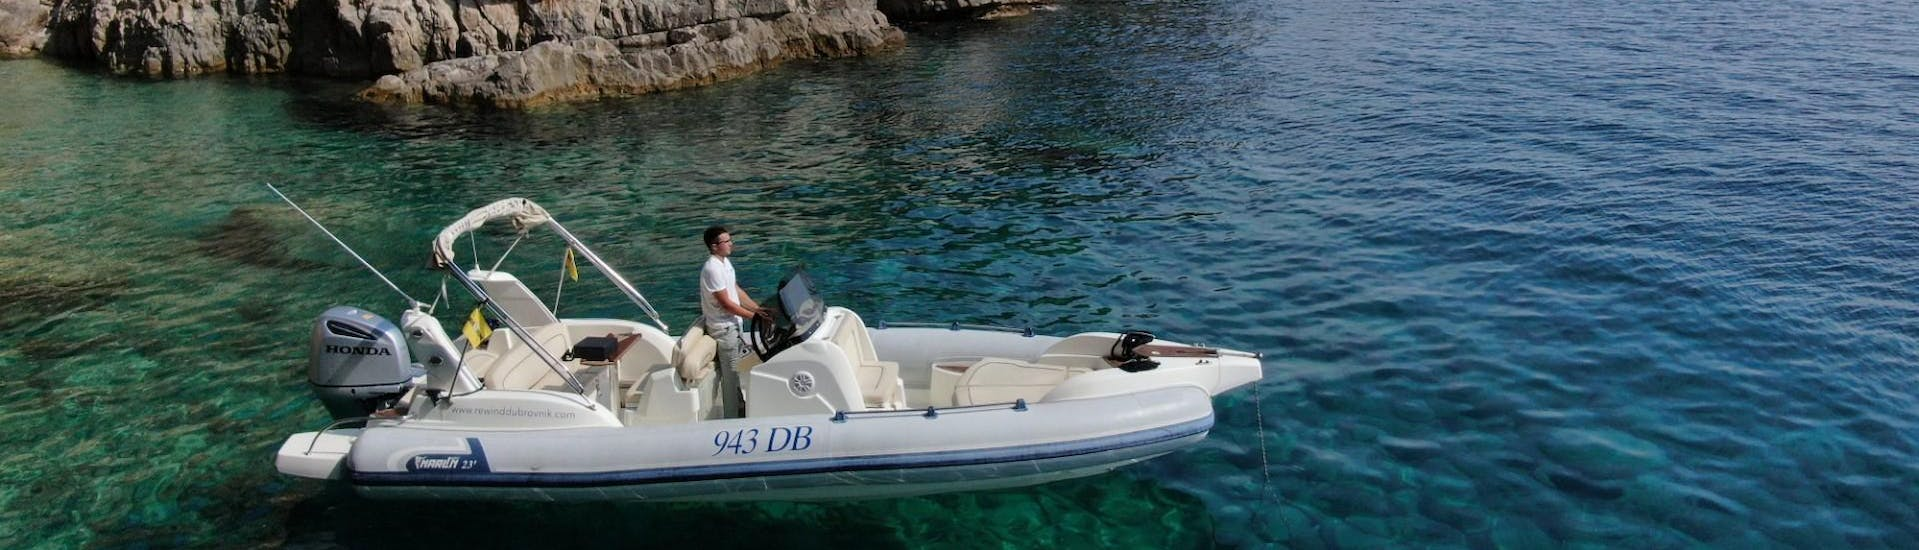 Private Boat Tour to National Park Mljet Island Tour